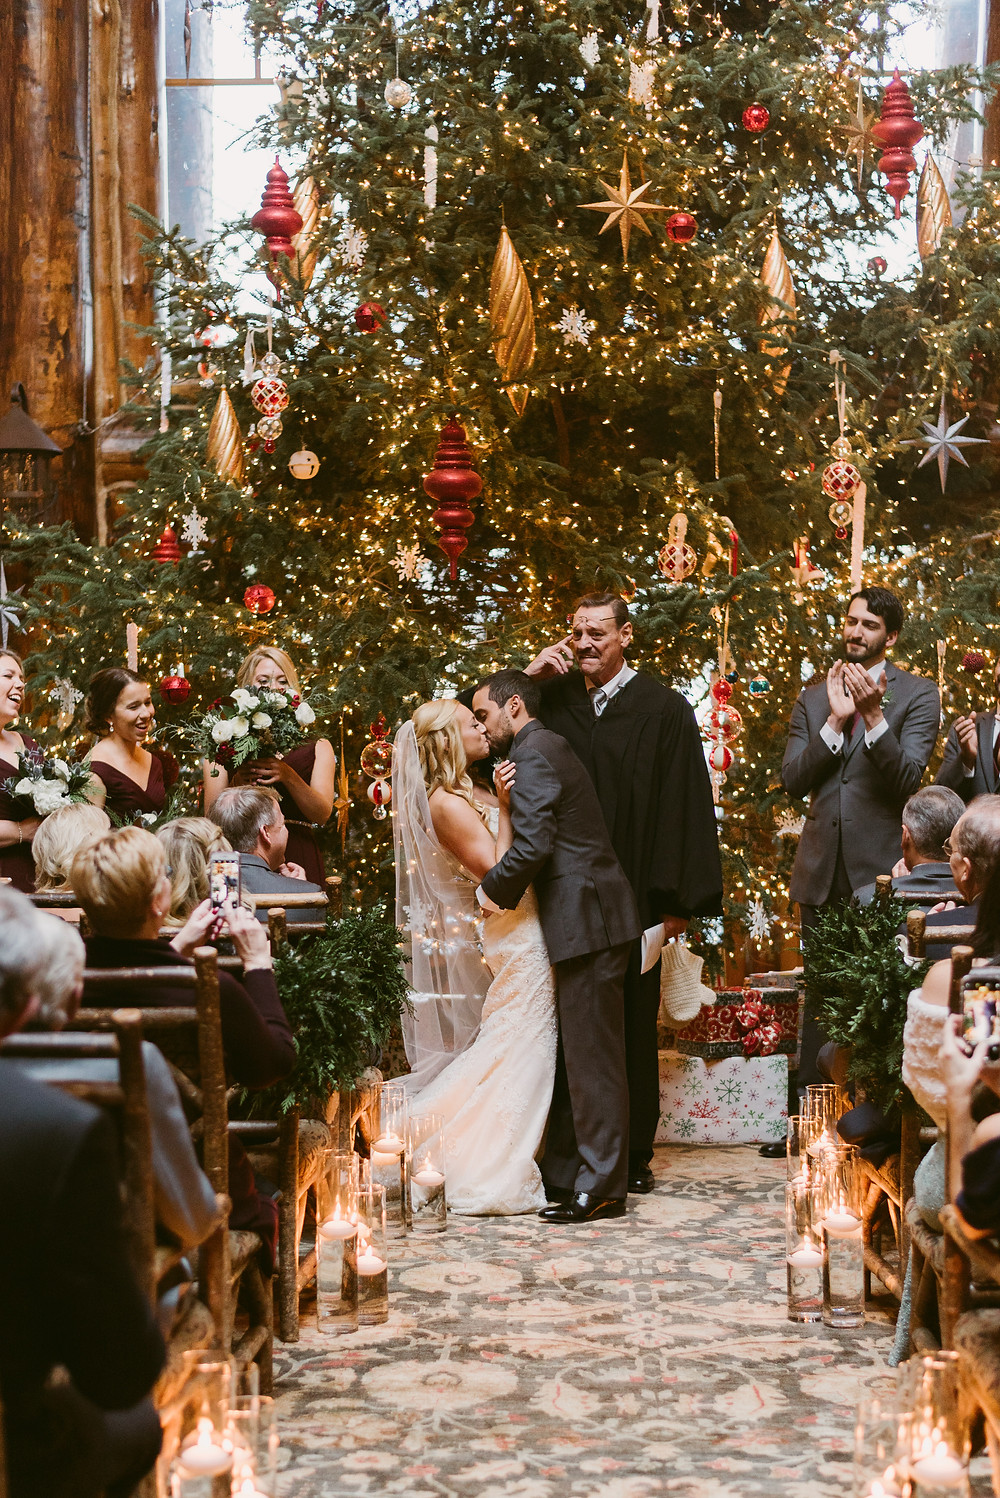 Lake Placid Wedding and Elopement Photographer Mountainaire Gatherings winter wedding at the Whiteface Lodge